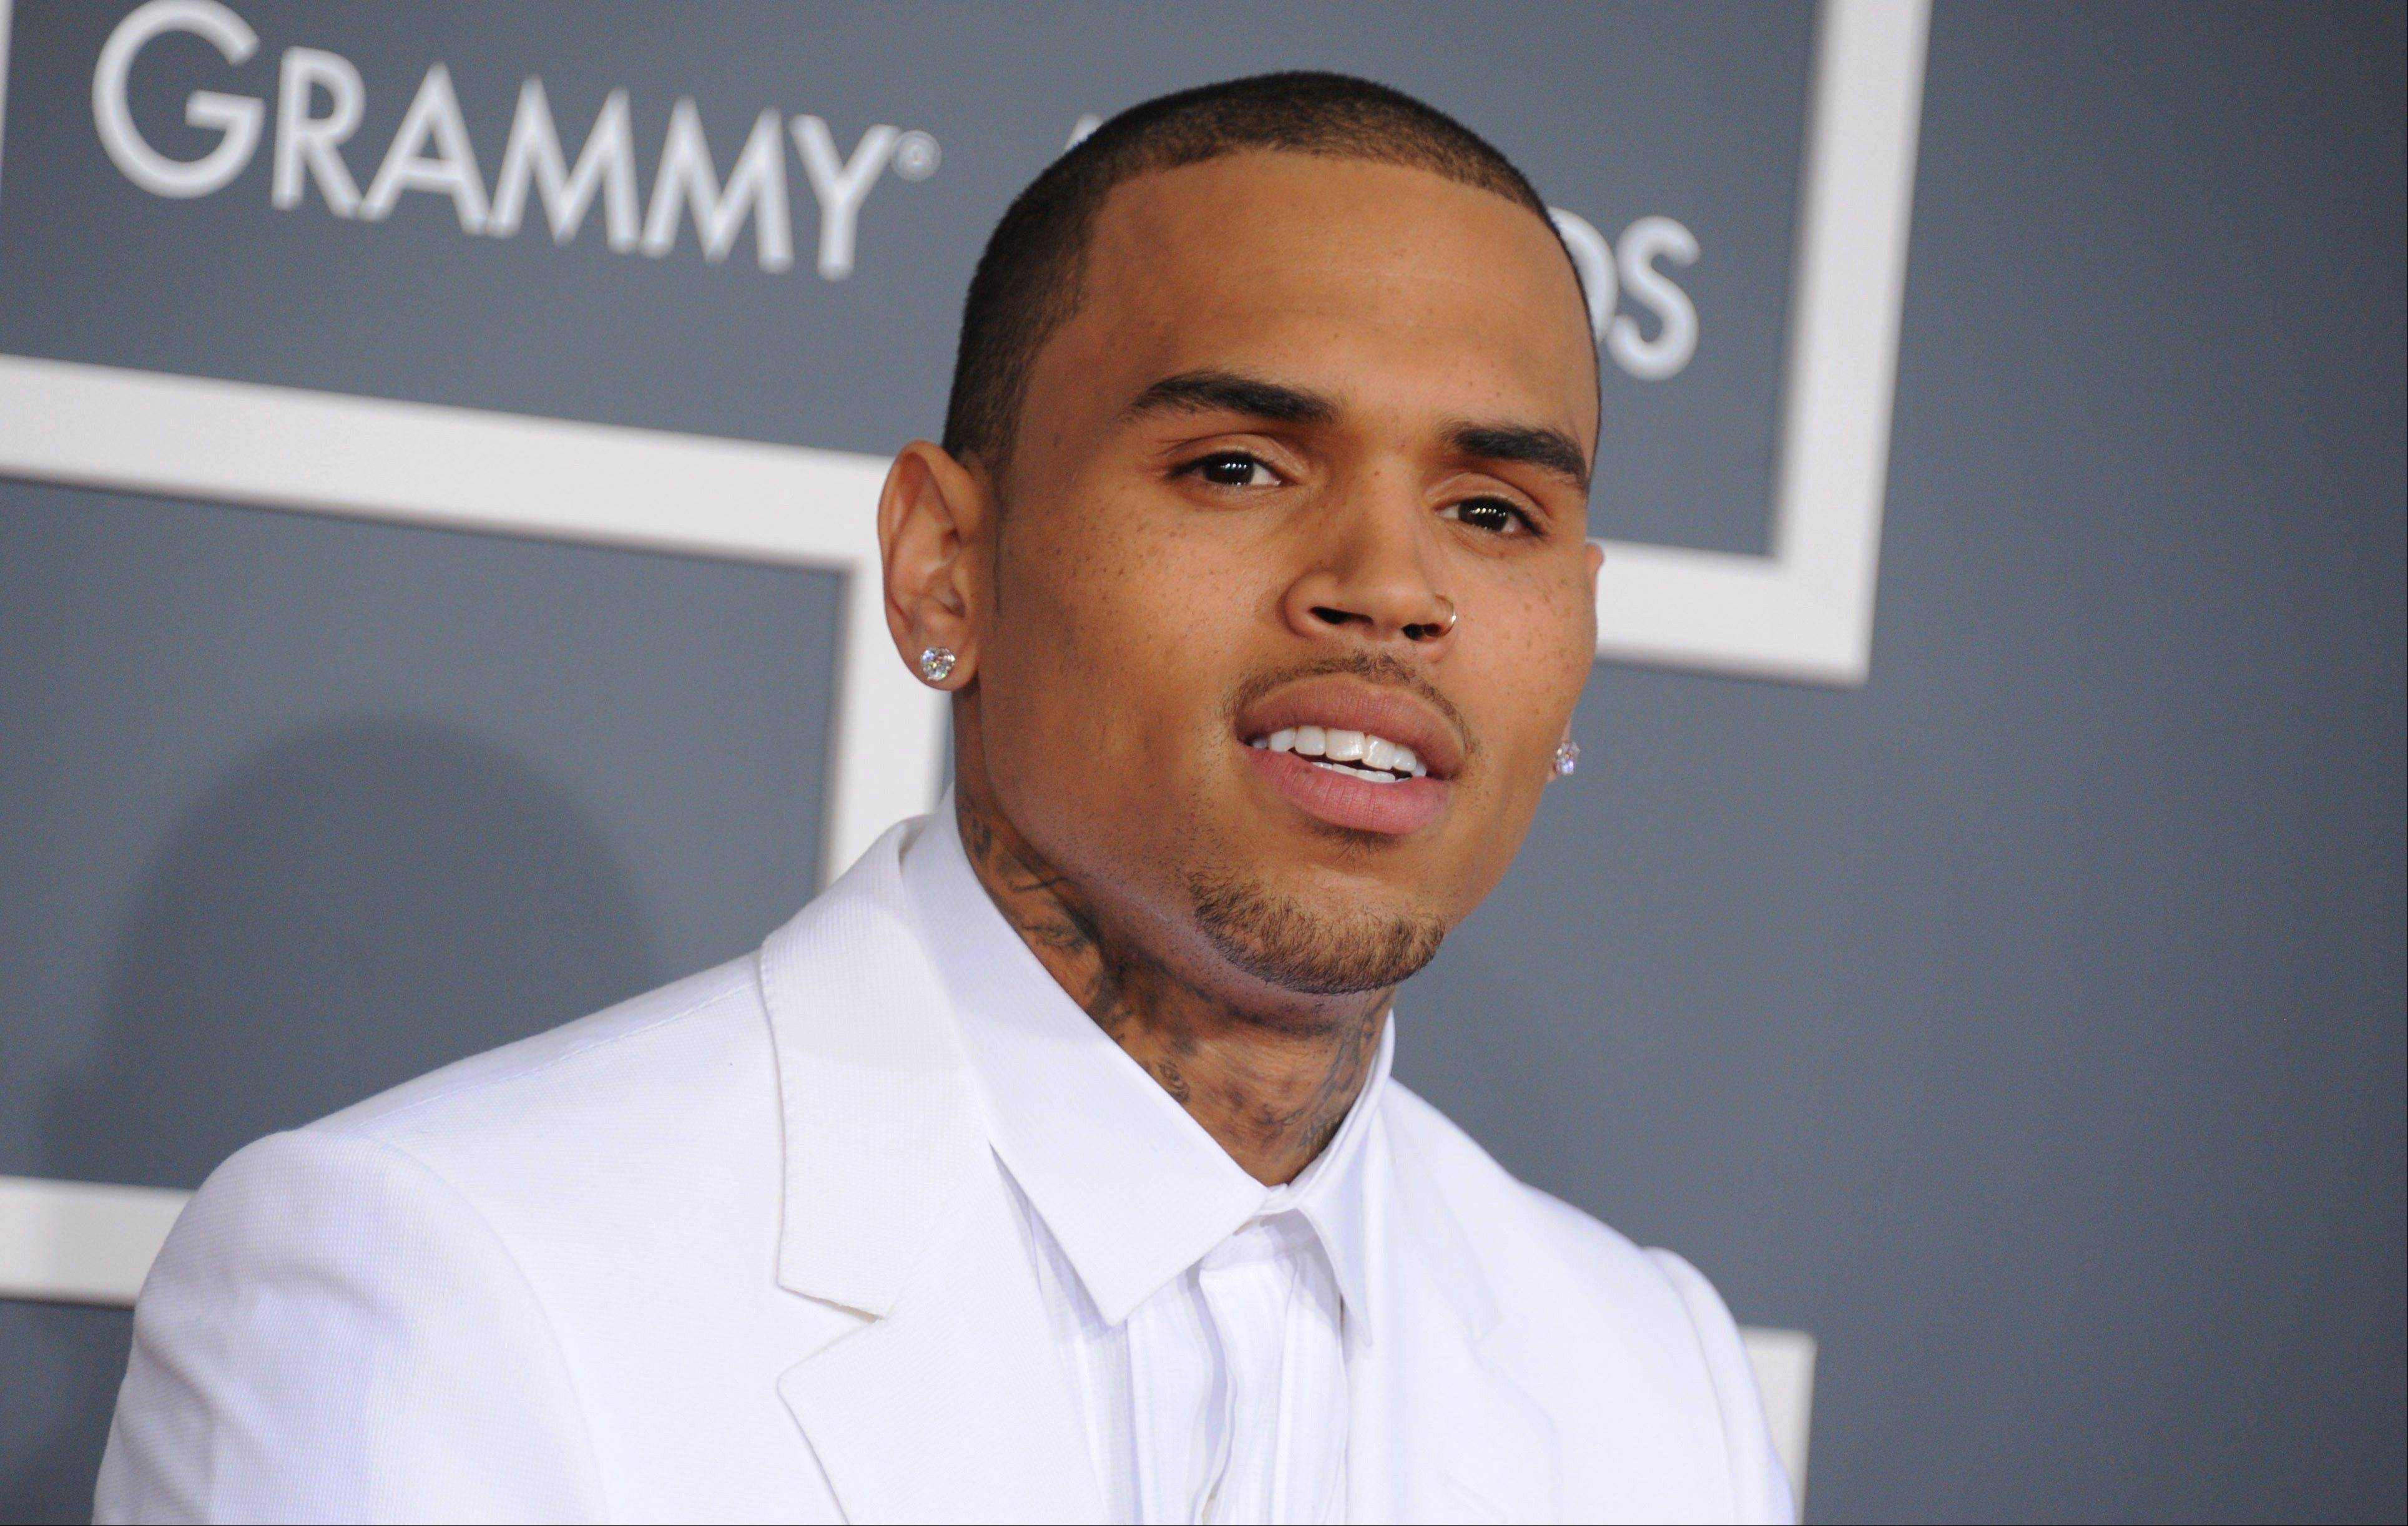 Chris Brown is due back in a Los Angeles courtroom on Wednesday, Nov. 20, 2013, to update a judge on his progress on completing community service ordered in an assault case filed after his 2009 attack on Rihanna. It will be Brown's first court appearance in LA since his arrest for misdemeanor assault in Washington, D.C.